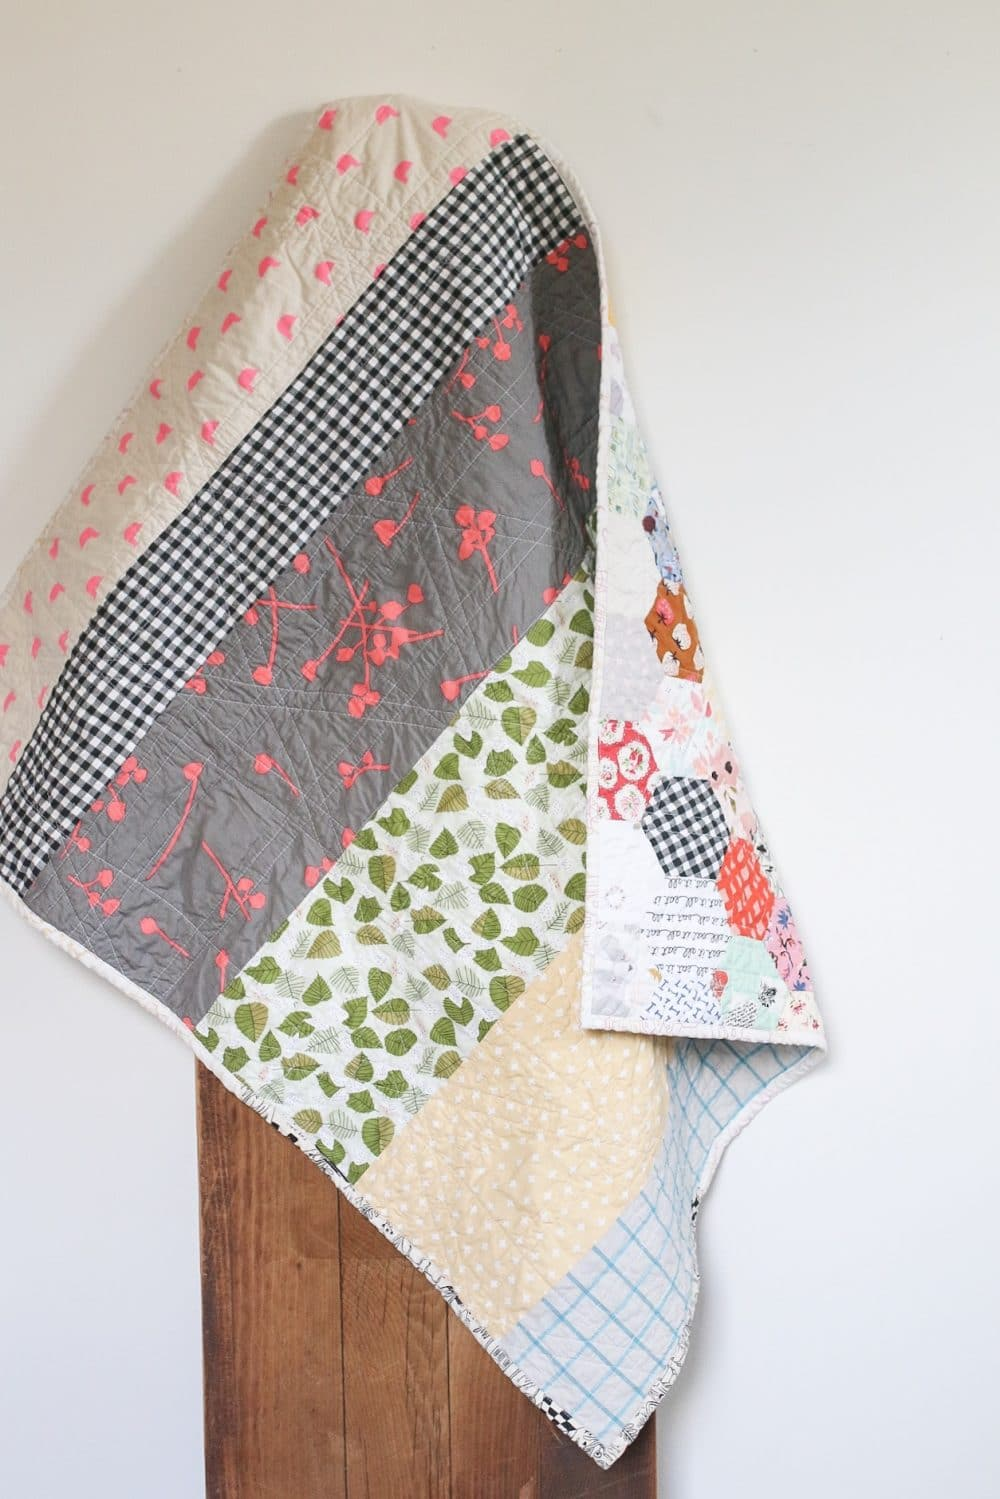 Hexagon quilt - epp at its finest. This quilt is so beautiful